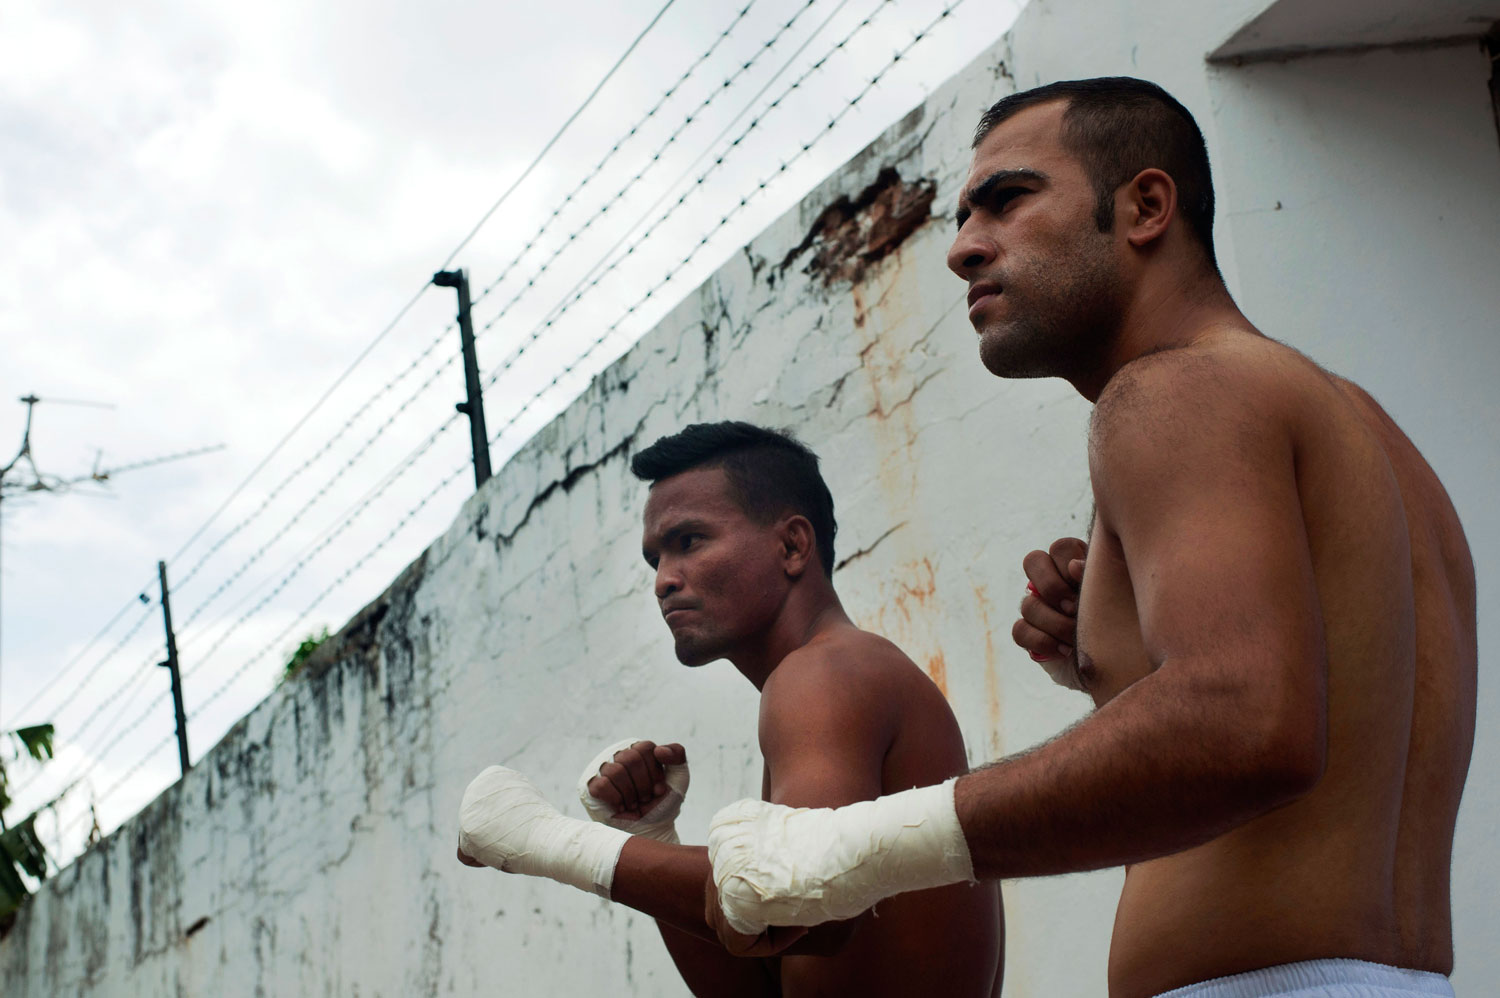 An inmate and a foreign fighter pose before their fight at Klong Pai prison on July 12, 2014 in Nakhon Ratchasima, Thailand.